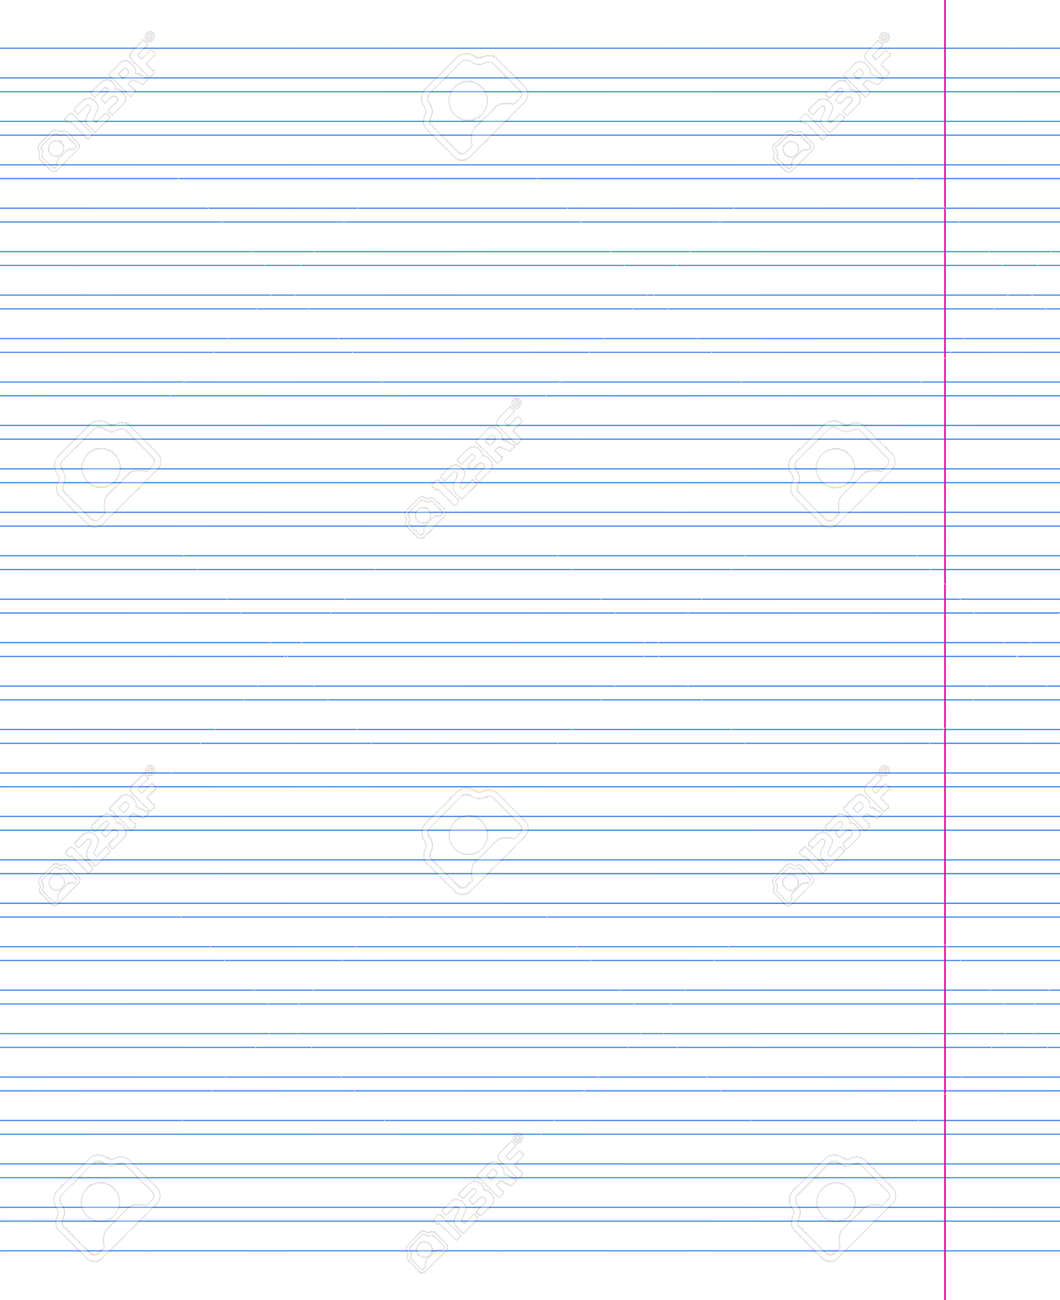 Grid paper. Abstract striped background with color horizontal lines. Geometric pattern for school, wallpaper, textures, notebook. Lined paper blank isolated on transparent background - 165674068